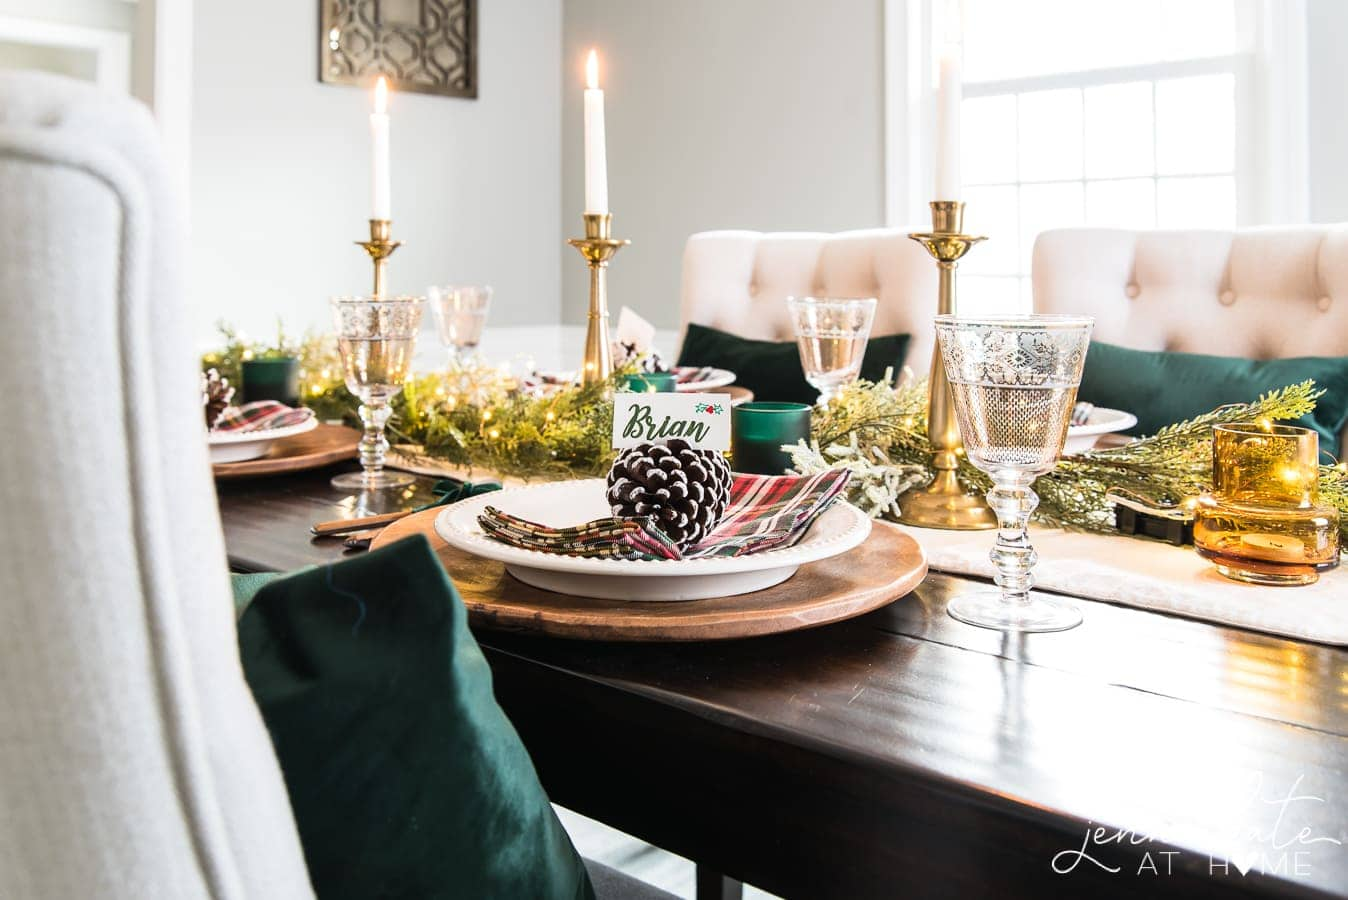 Simple and elegant traditional Christmas place settings